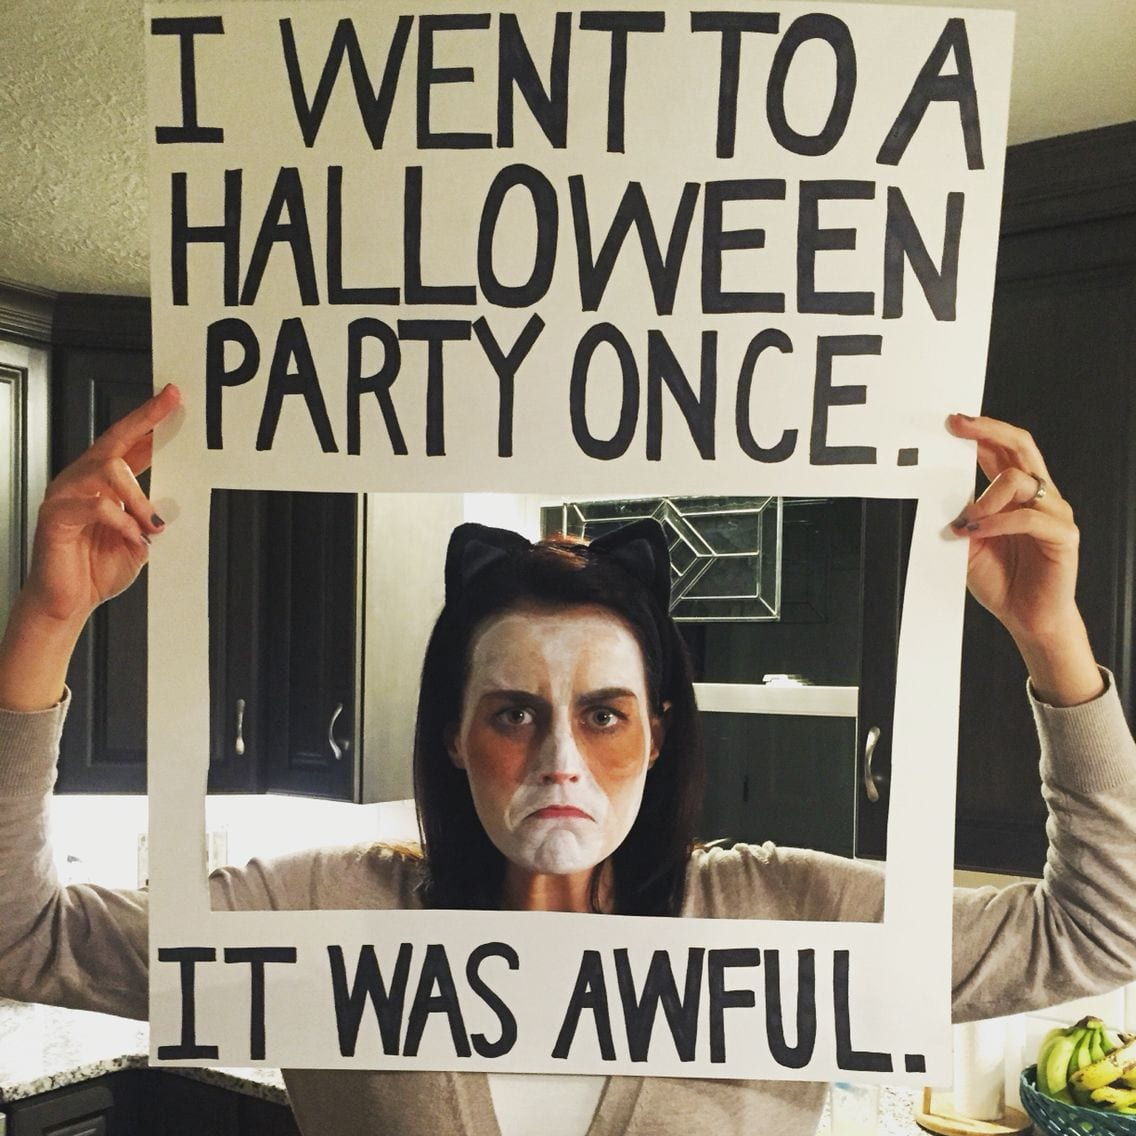 grumpy cat meme costume